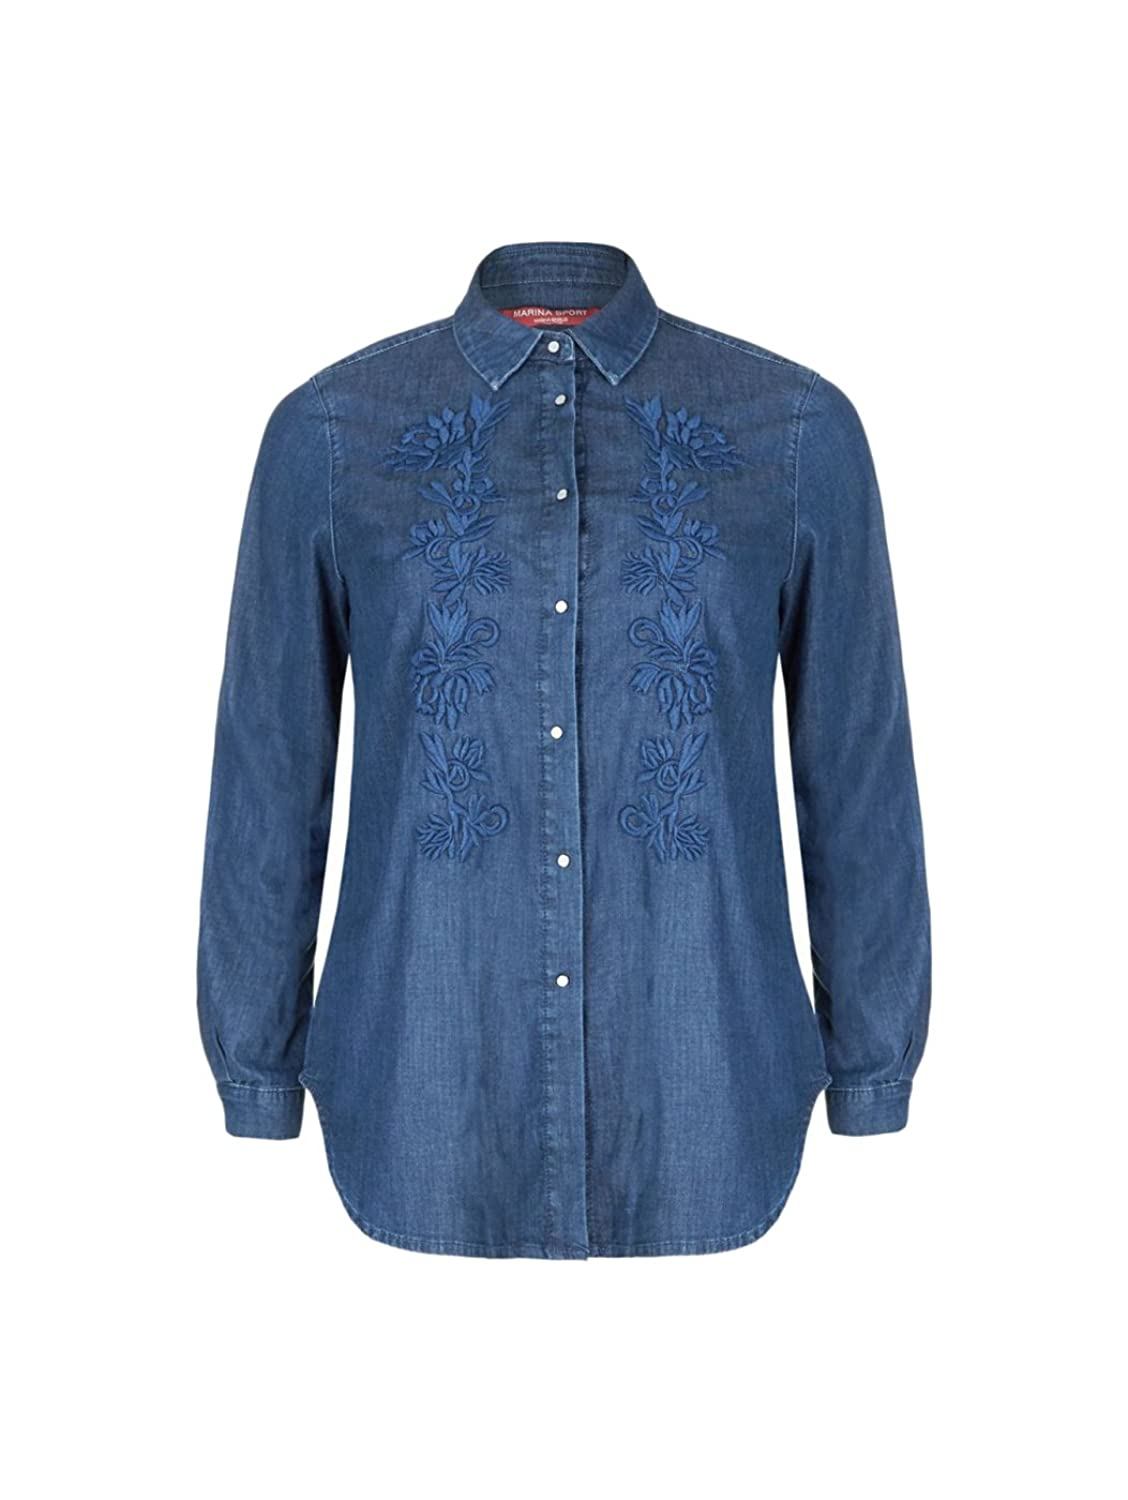 Marina Rinaldi Women's Barico Embroidered Blouse Denim